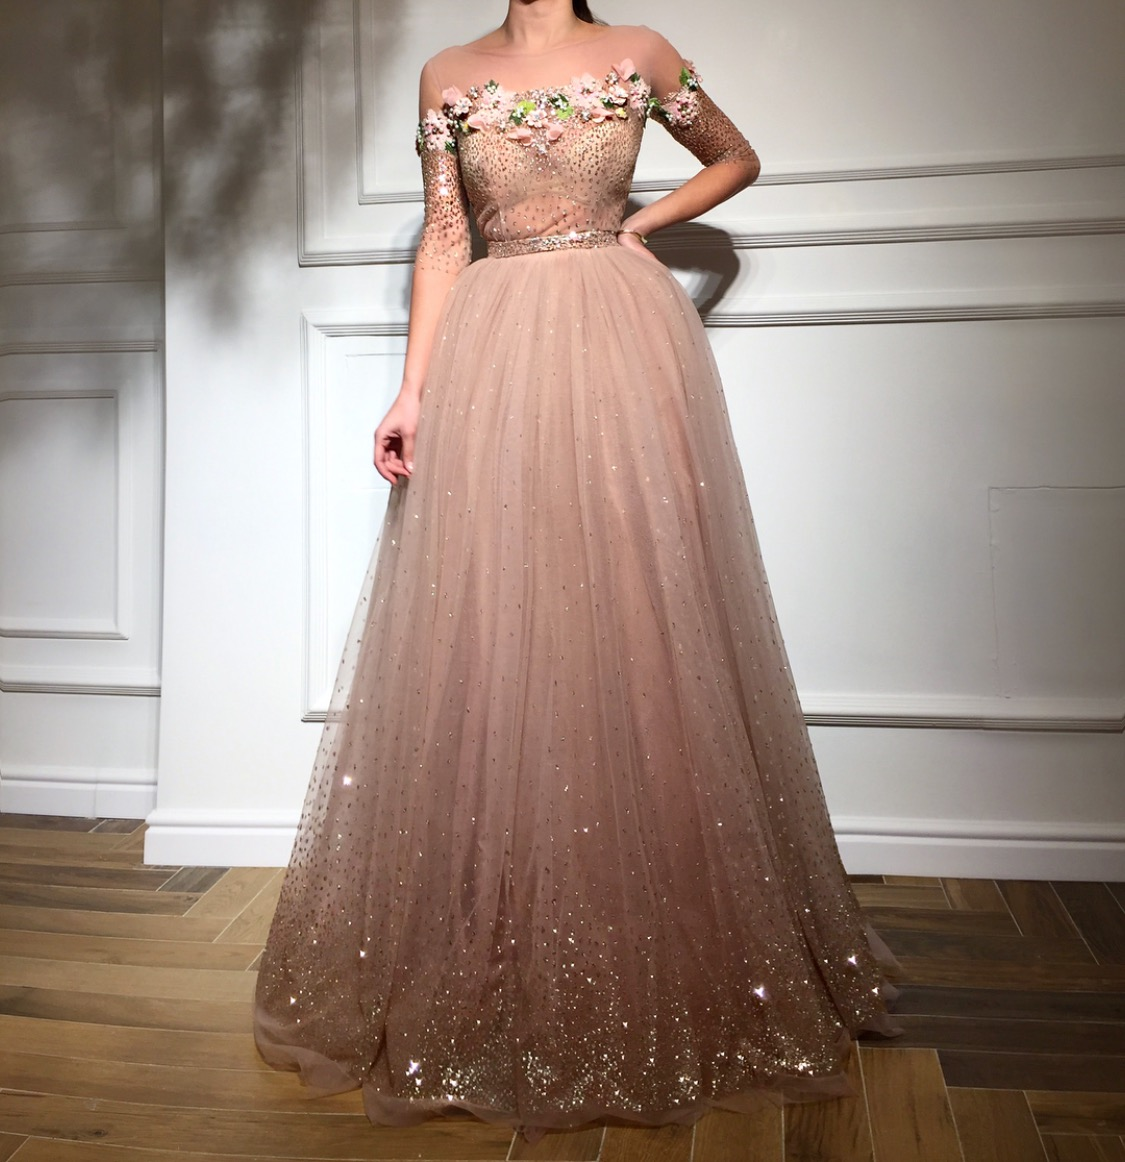 Peach fantasy evening gown